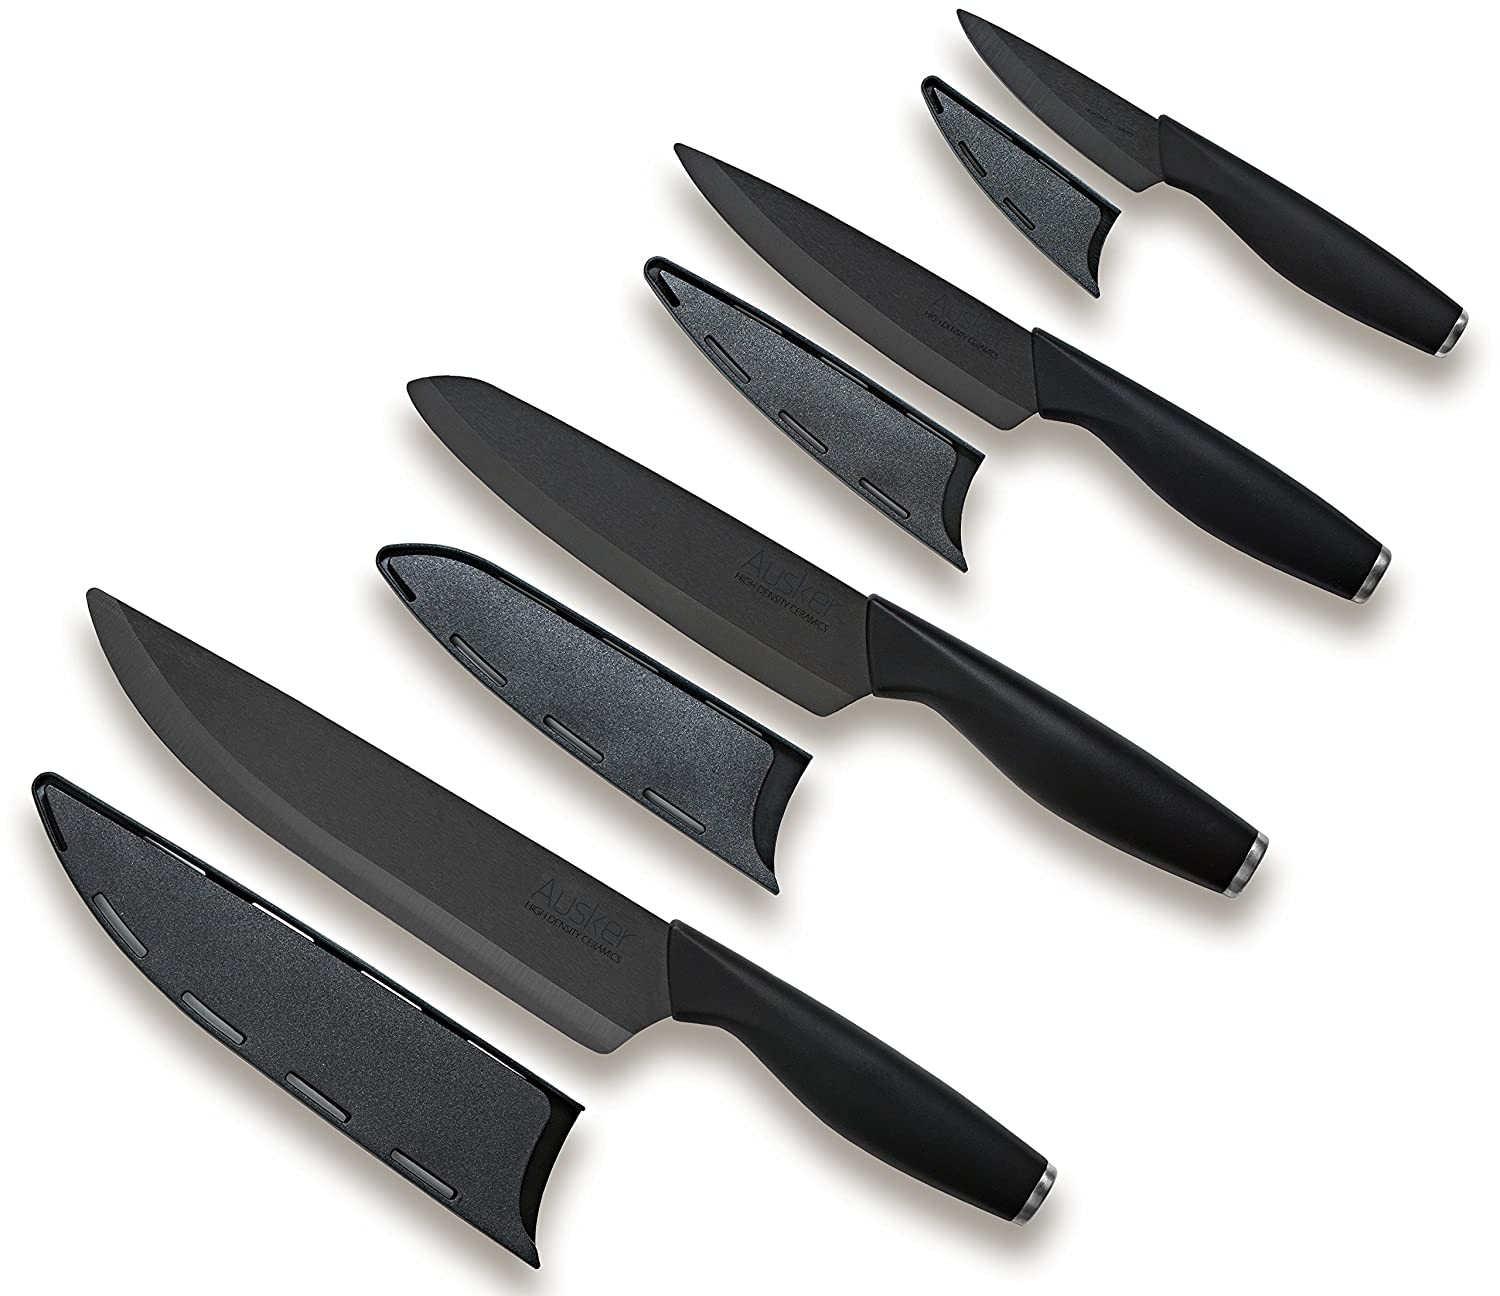 Ausker Ceramic Knife Set Kitchen Knives 4 Piece